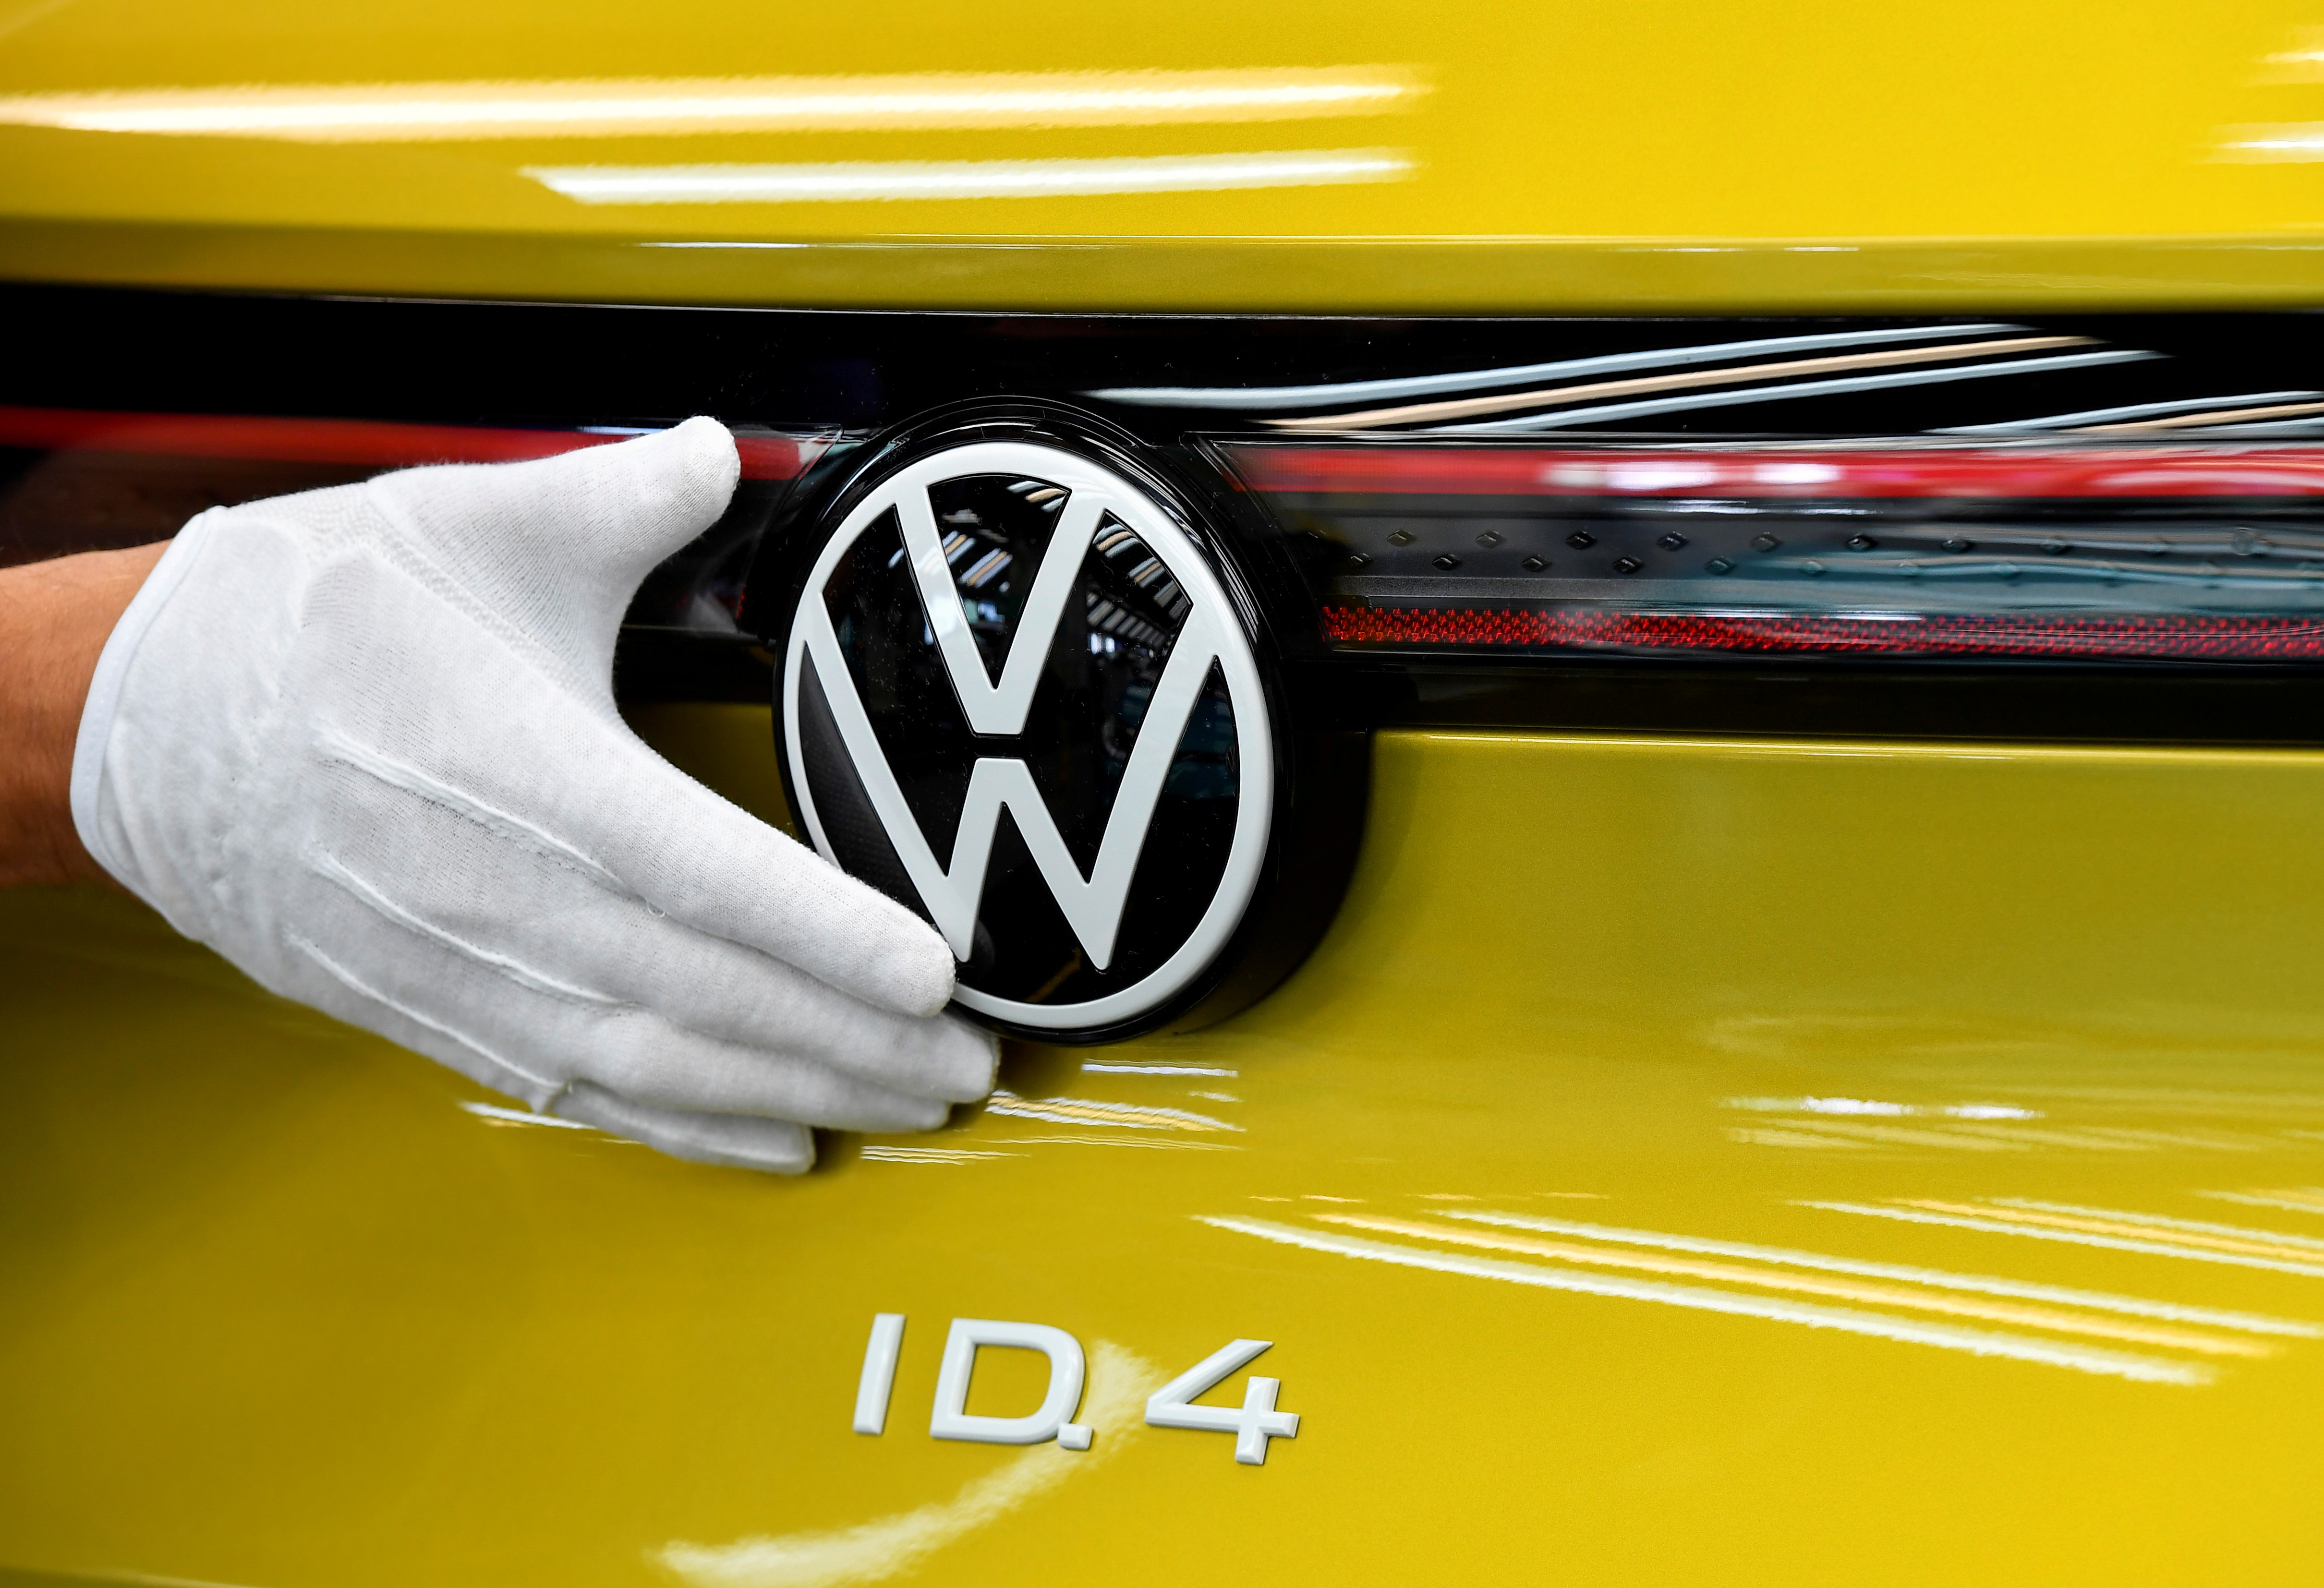 A technical employee cleans the paint in the final inspection at the production line for the electric Volkswagen model ID.4, in Zwickau, Germany, September 18, 2020. REUTERS/Matthias Rietschel